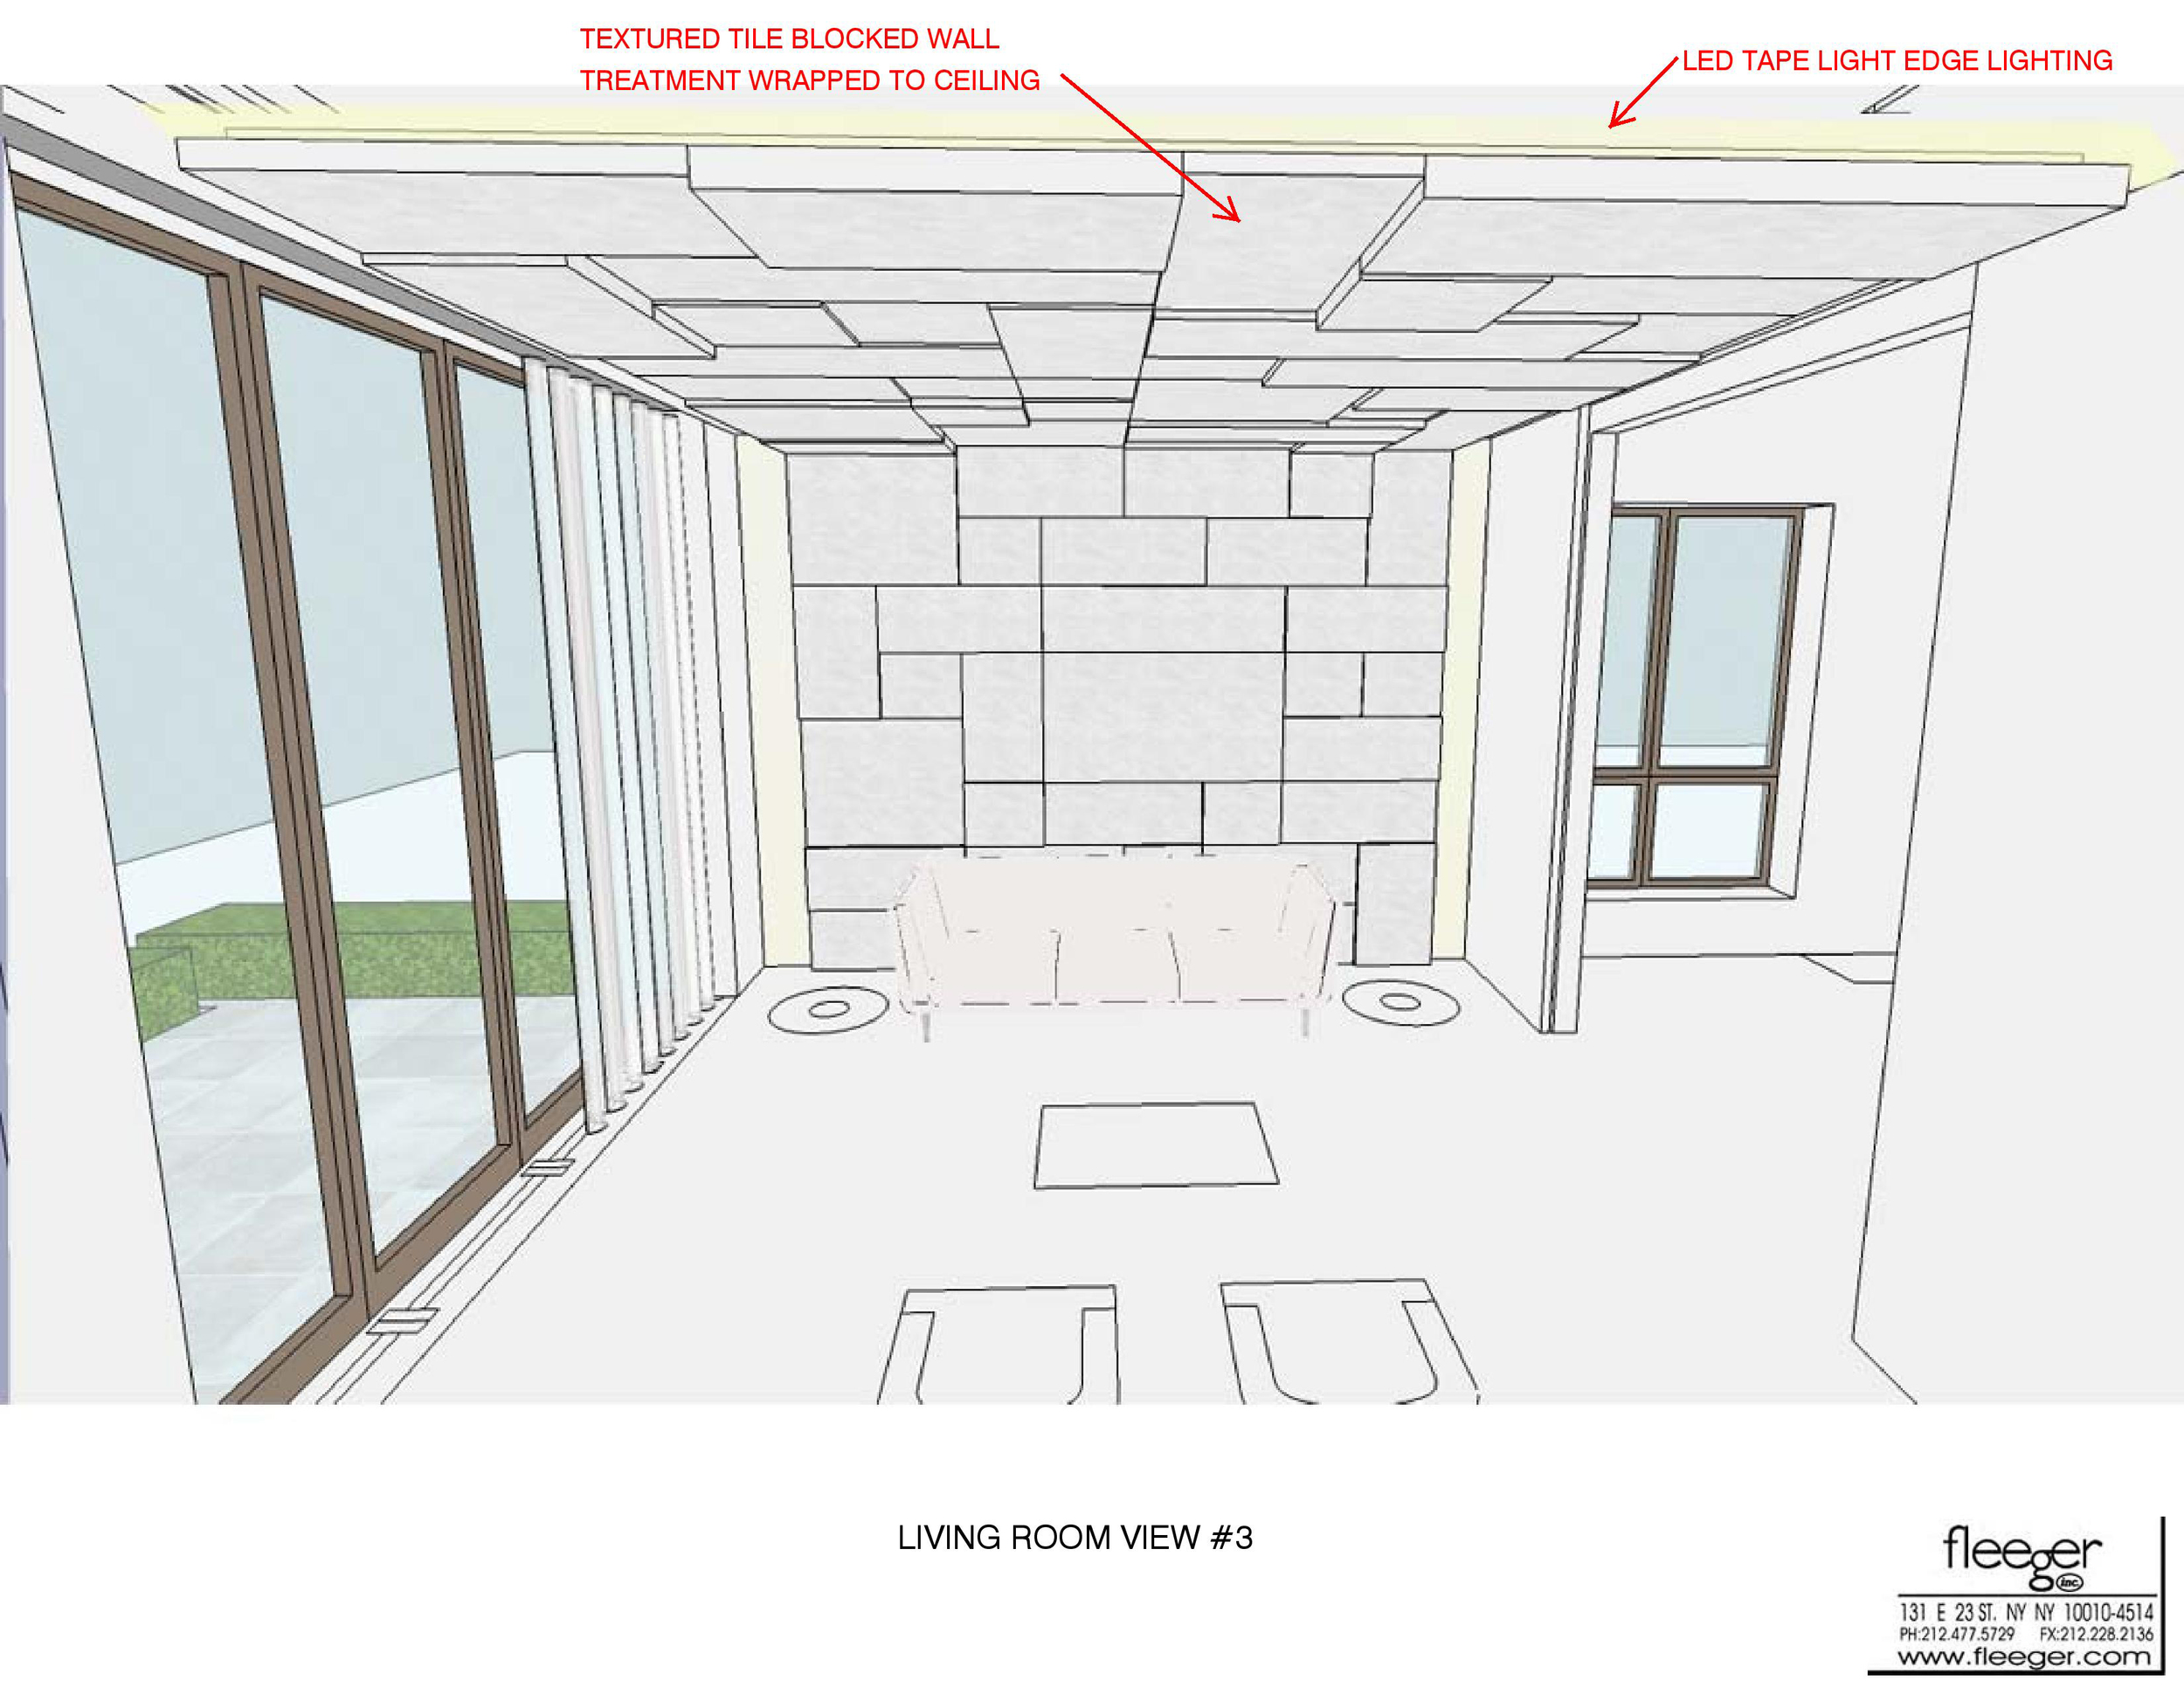 Khaski INTERIOR VIEWS COMBINED-page-003.jpg